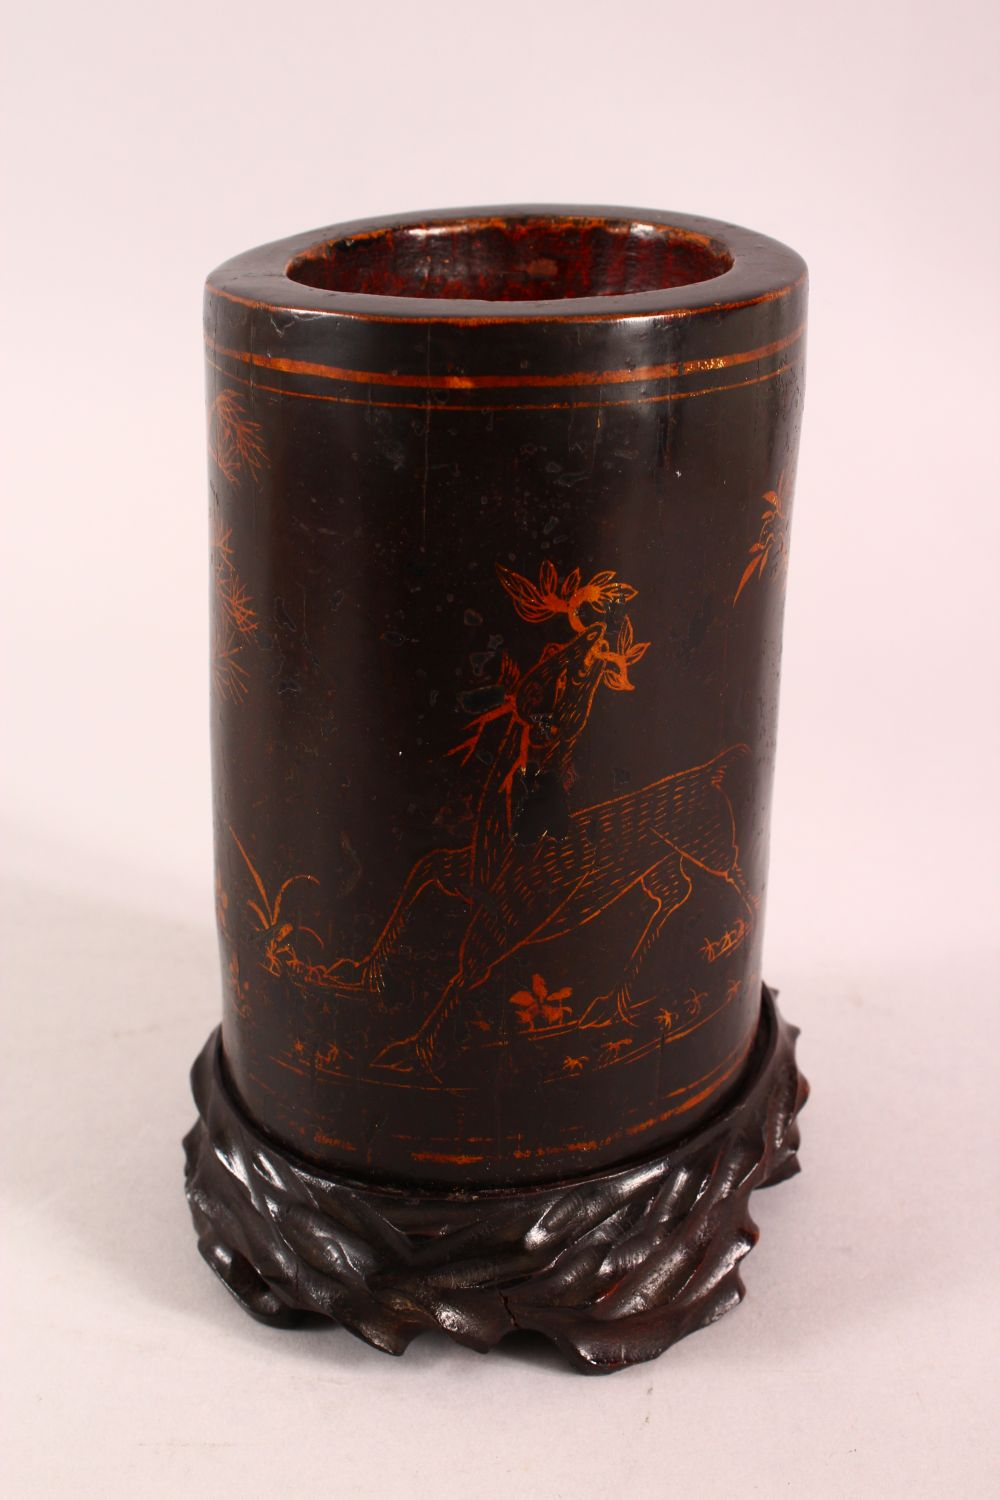 A CHINESE LACQUERED BAMBOO BRUSH WASH AND STAND, the body decorated with birds in landscapes, 19cm - Image 4 of 7